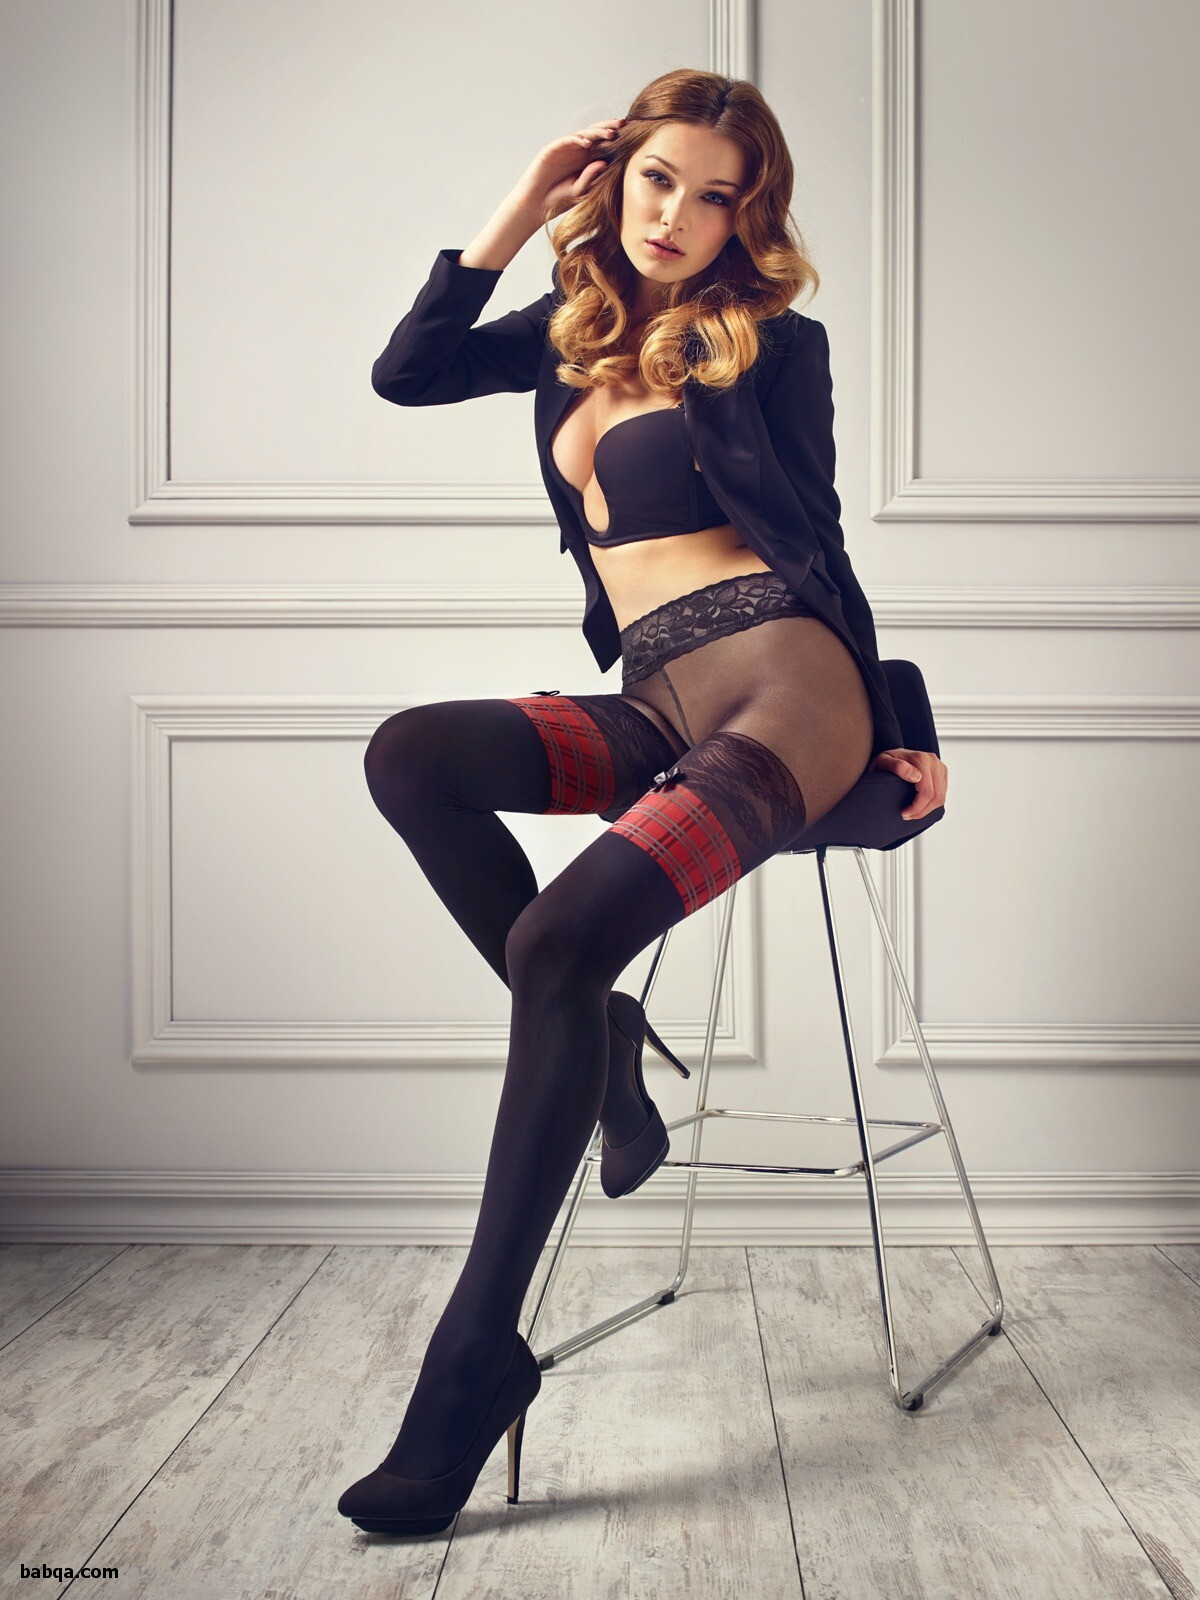 mature stocking ladies and top 10 sexiest lingerie